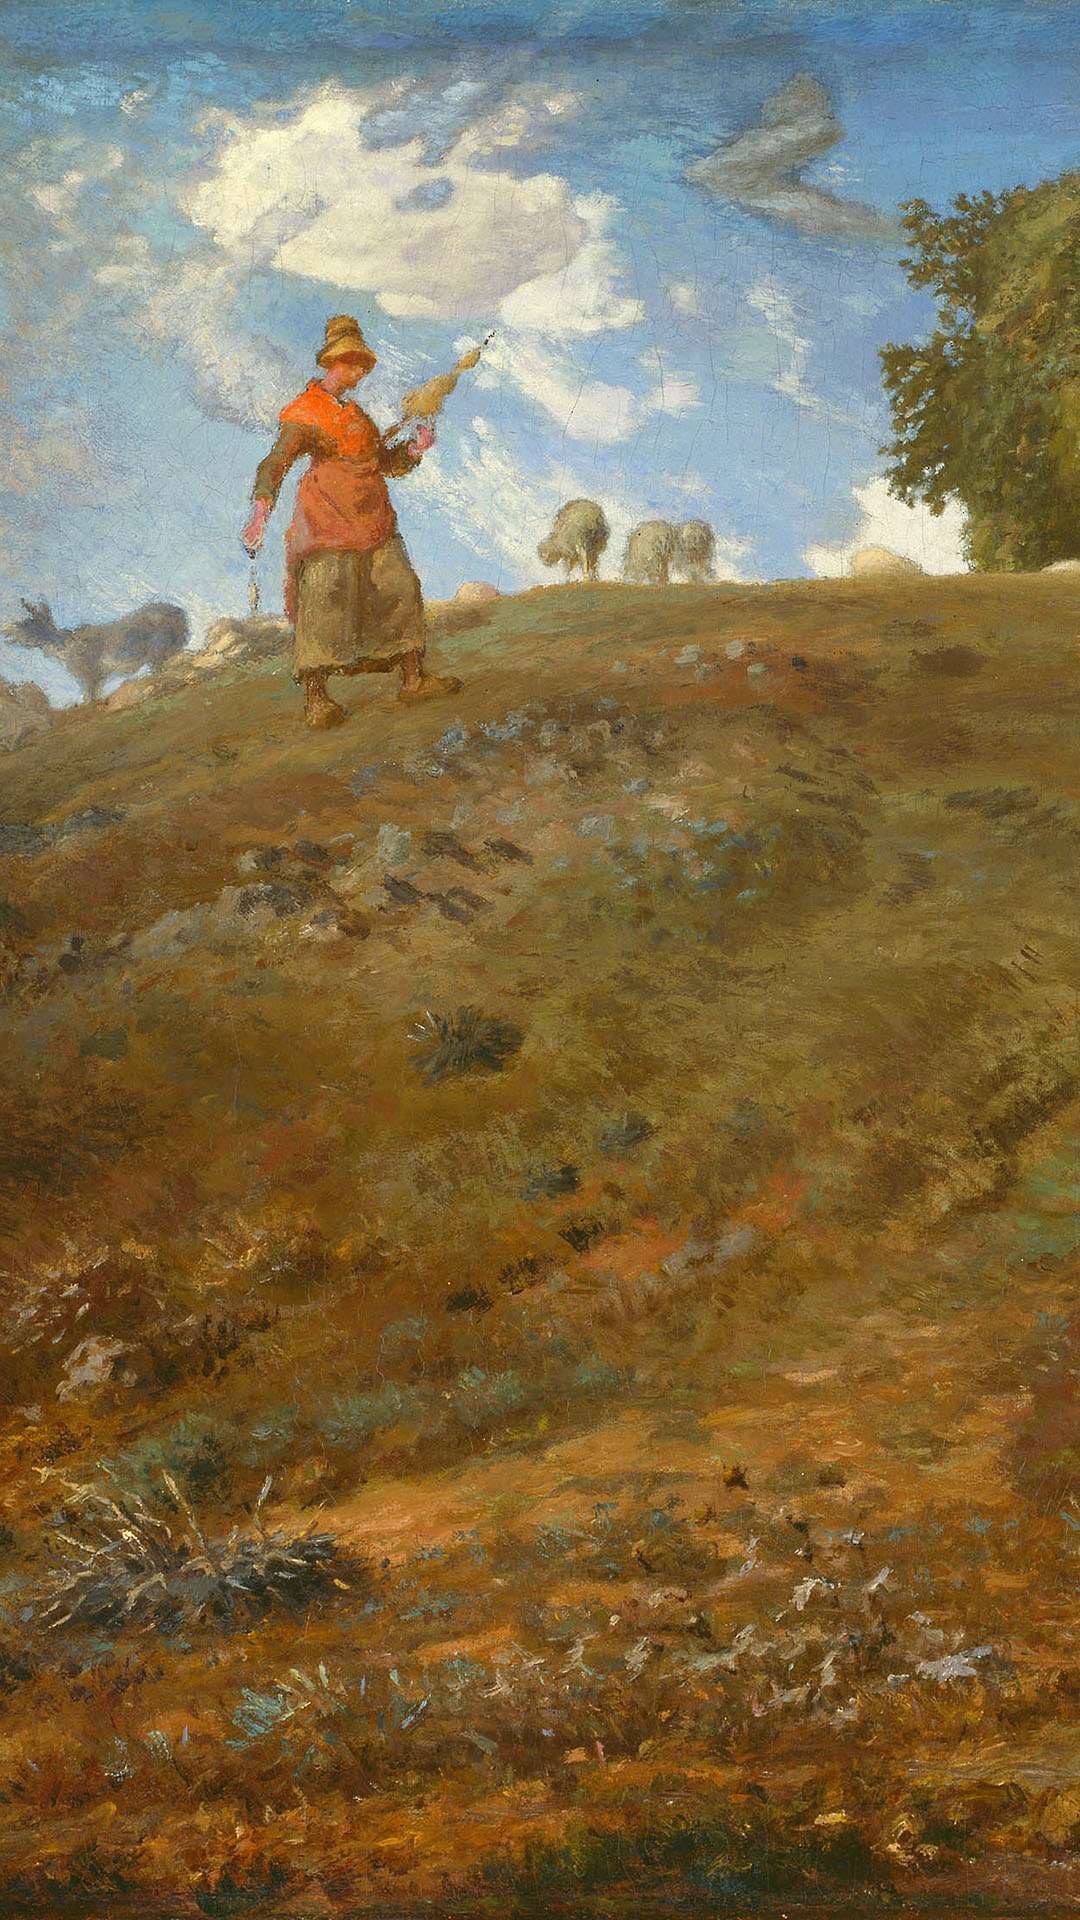 Jean-François Millet - In the auvergne 1080x1920